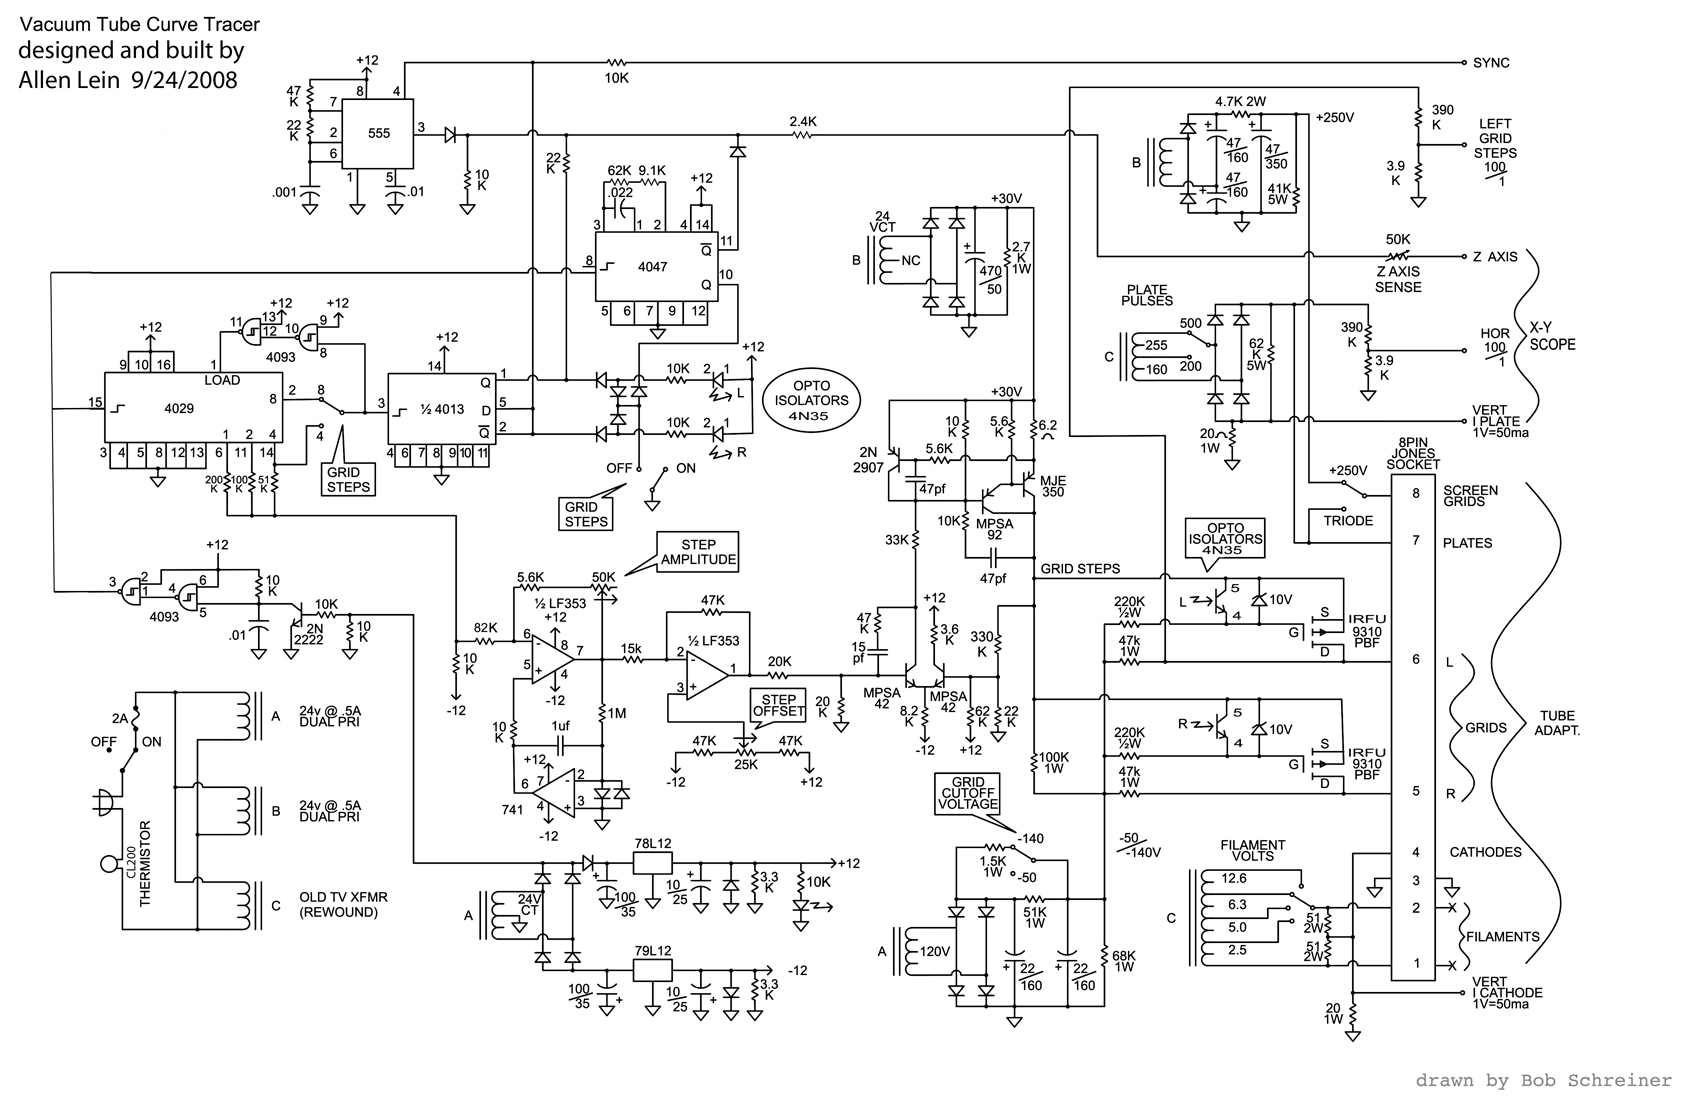 Allen Lein Fiat Uno Electrical Wiring Diagram And Troubleshooting